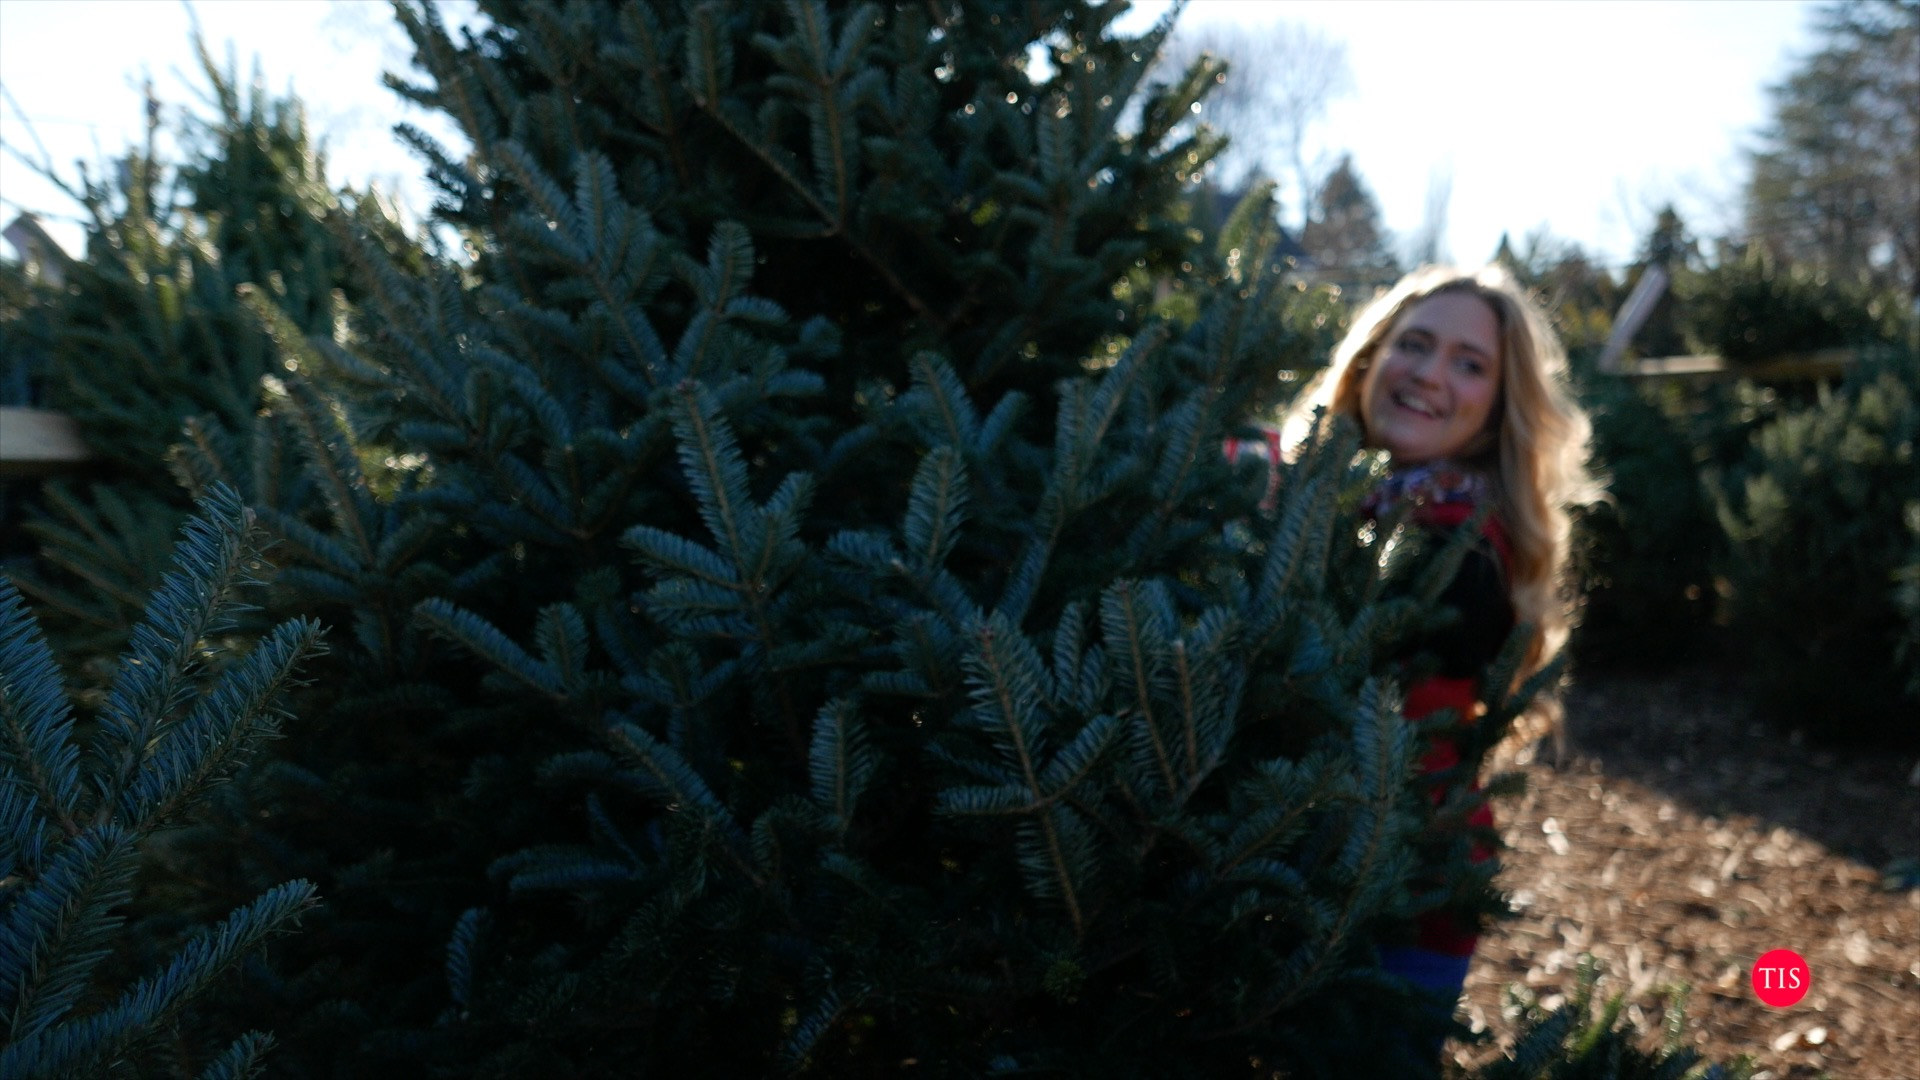 Jennifer at Kogut's in meriden, ct choosing a huge tree for the house